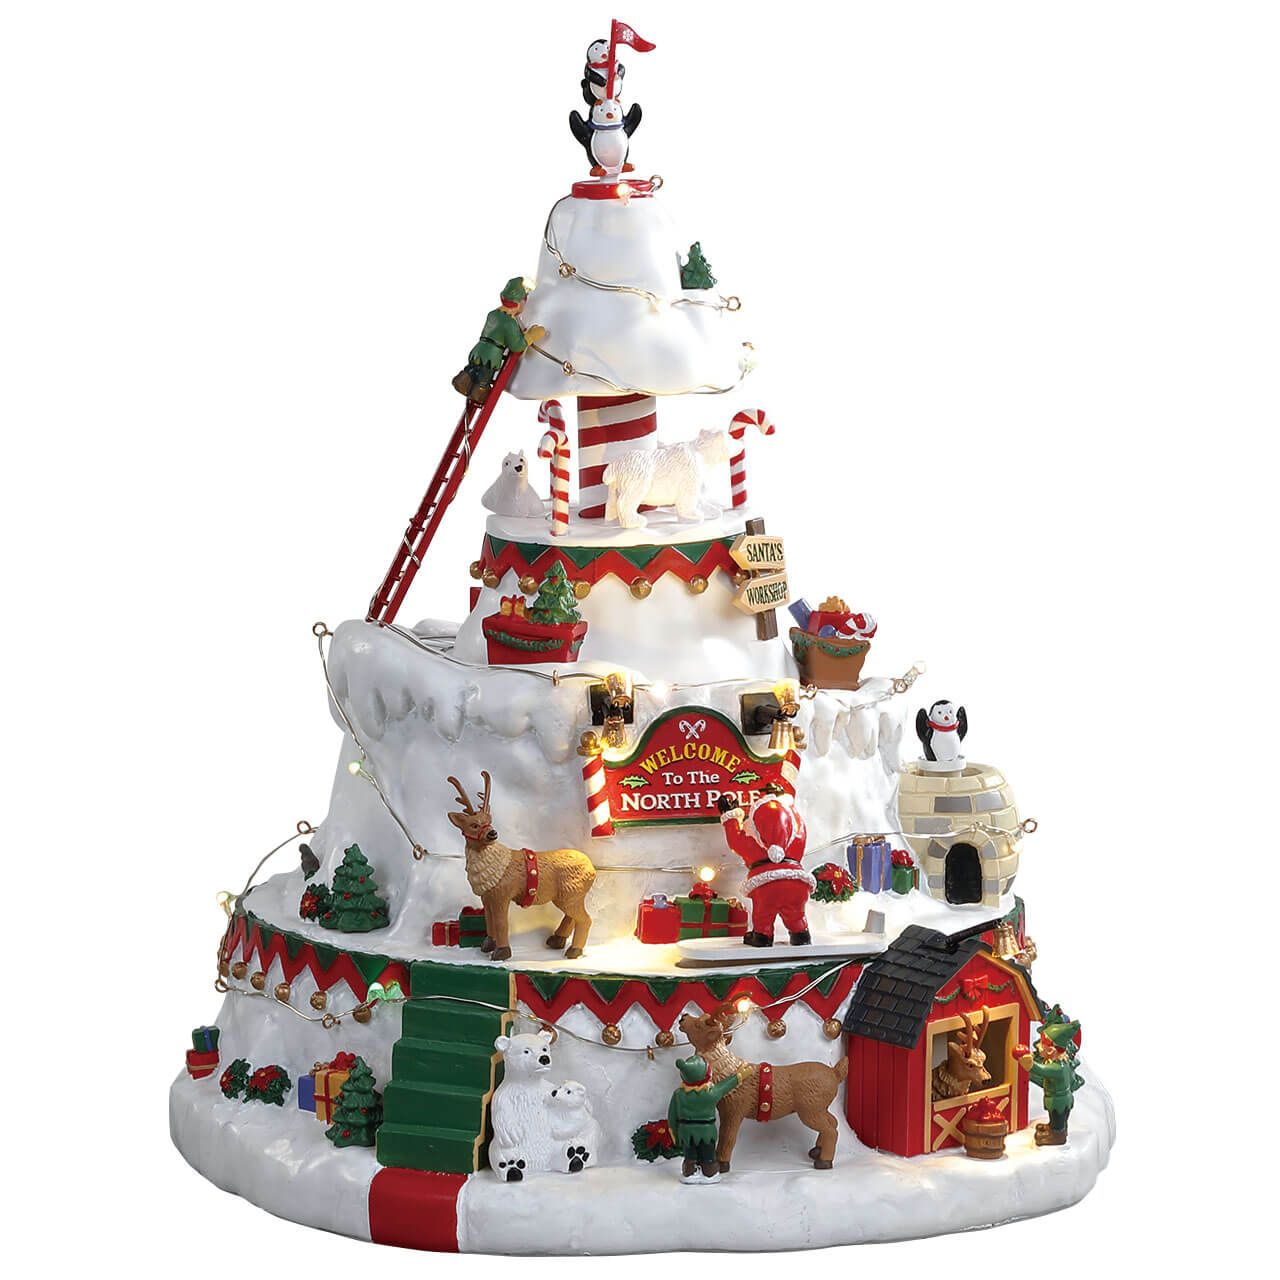 Lemax Christmas Village Michaels.North Pole Tower Sku 84348 Released In 2018 As A Michaels